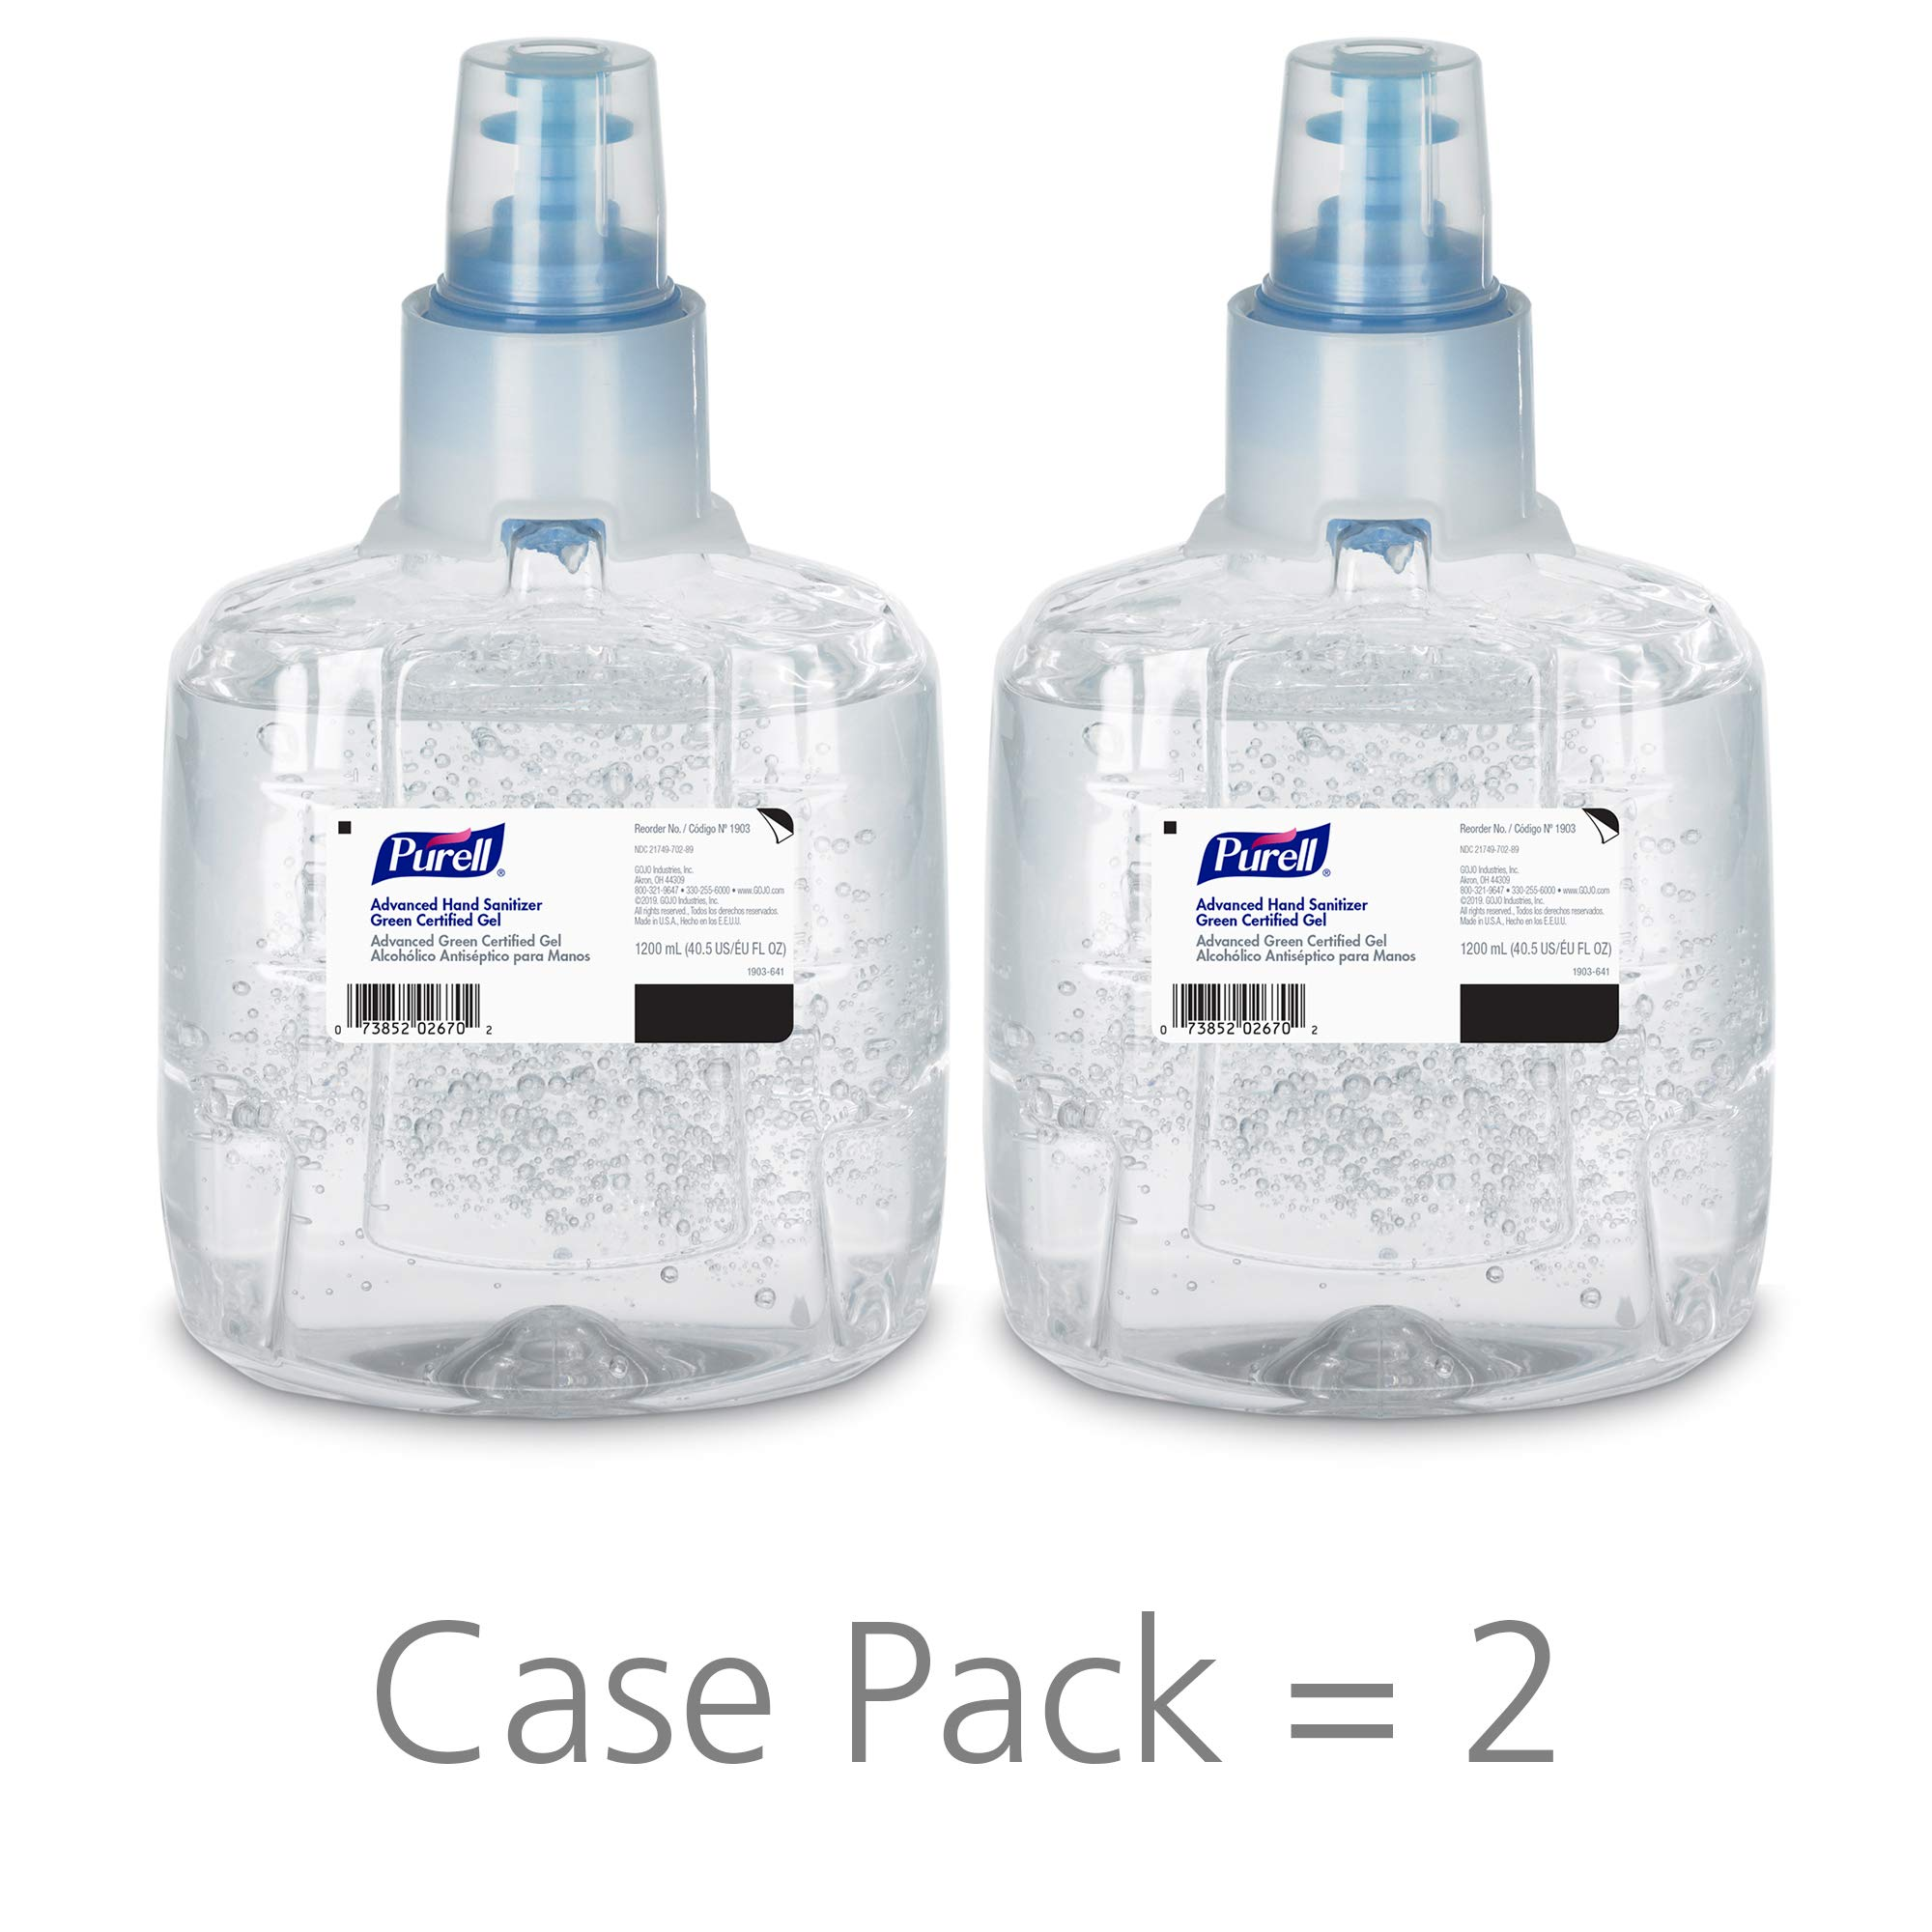 PURELL Advanced Green Certified Hand Sanitizer Gel, 1200 mL Sanitizer Refill for PURELL LTX Touch-Free Dispenser (Pack of 2)- 1903-02 by Purell